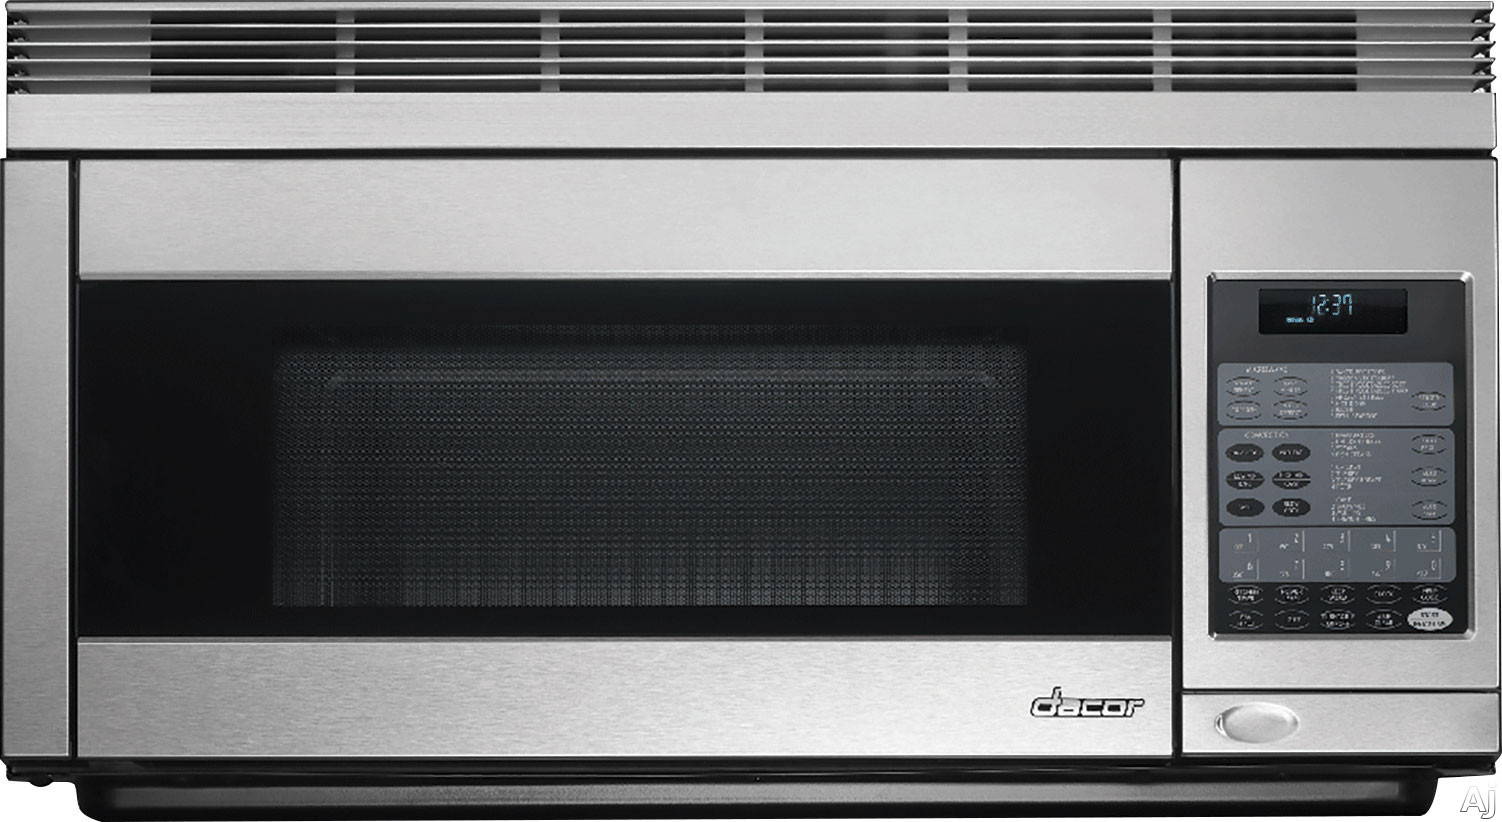 Dacor Discovery PCOR30 1.1 cu. ft. Over-the-Range Convection Microwave with 850 Watts, 300CFM Venting System, Convection Technology, Sensor Modes, Interactive Touchscreen Display and 2-Level Cooking Rack